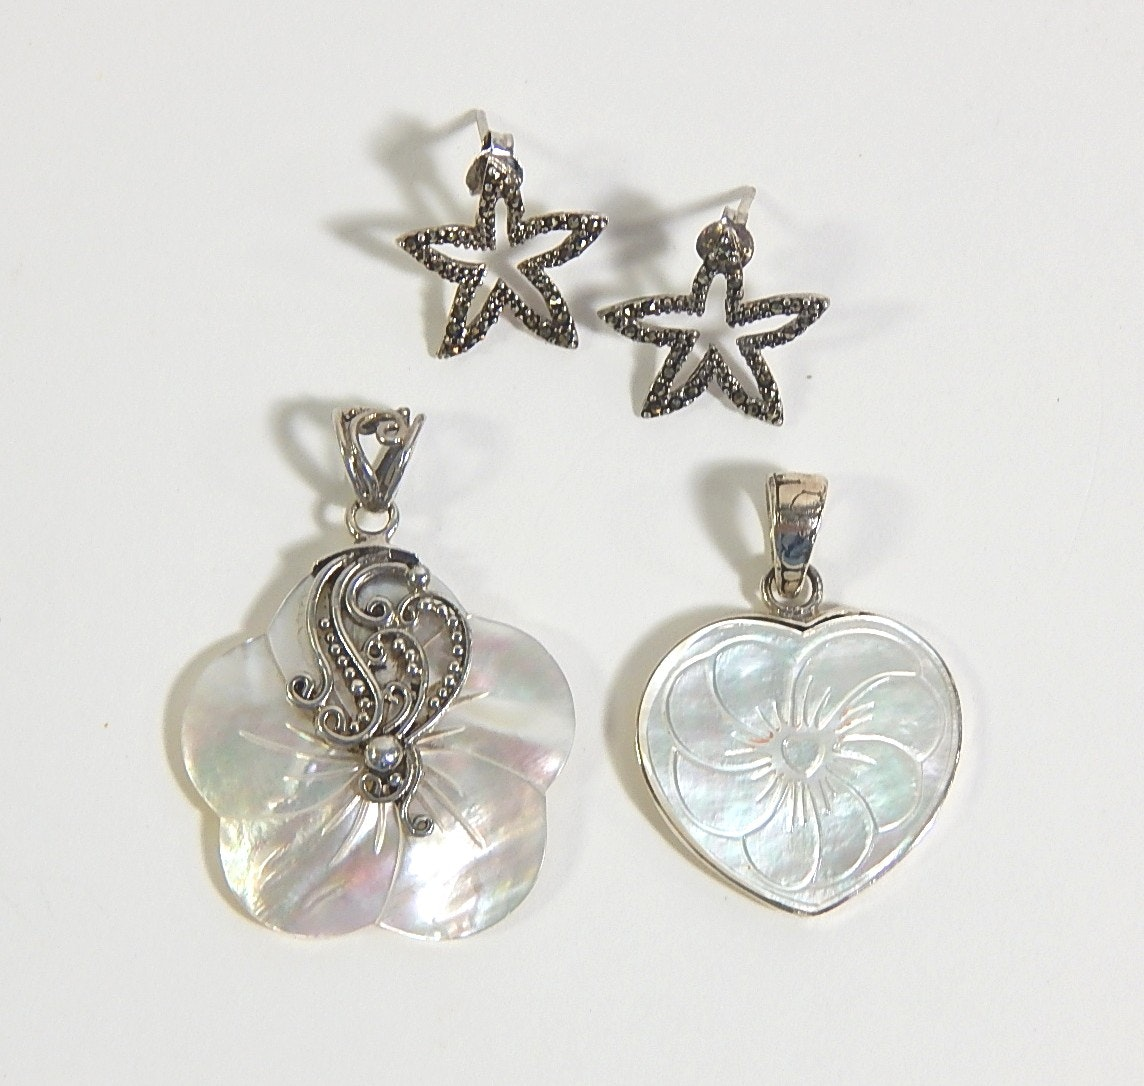 Sterling Silver Starfish Earrings and Mother of Pearl Pendants